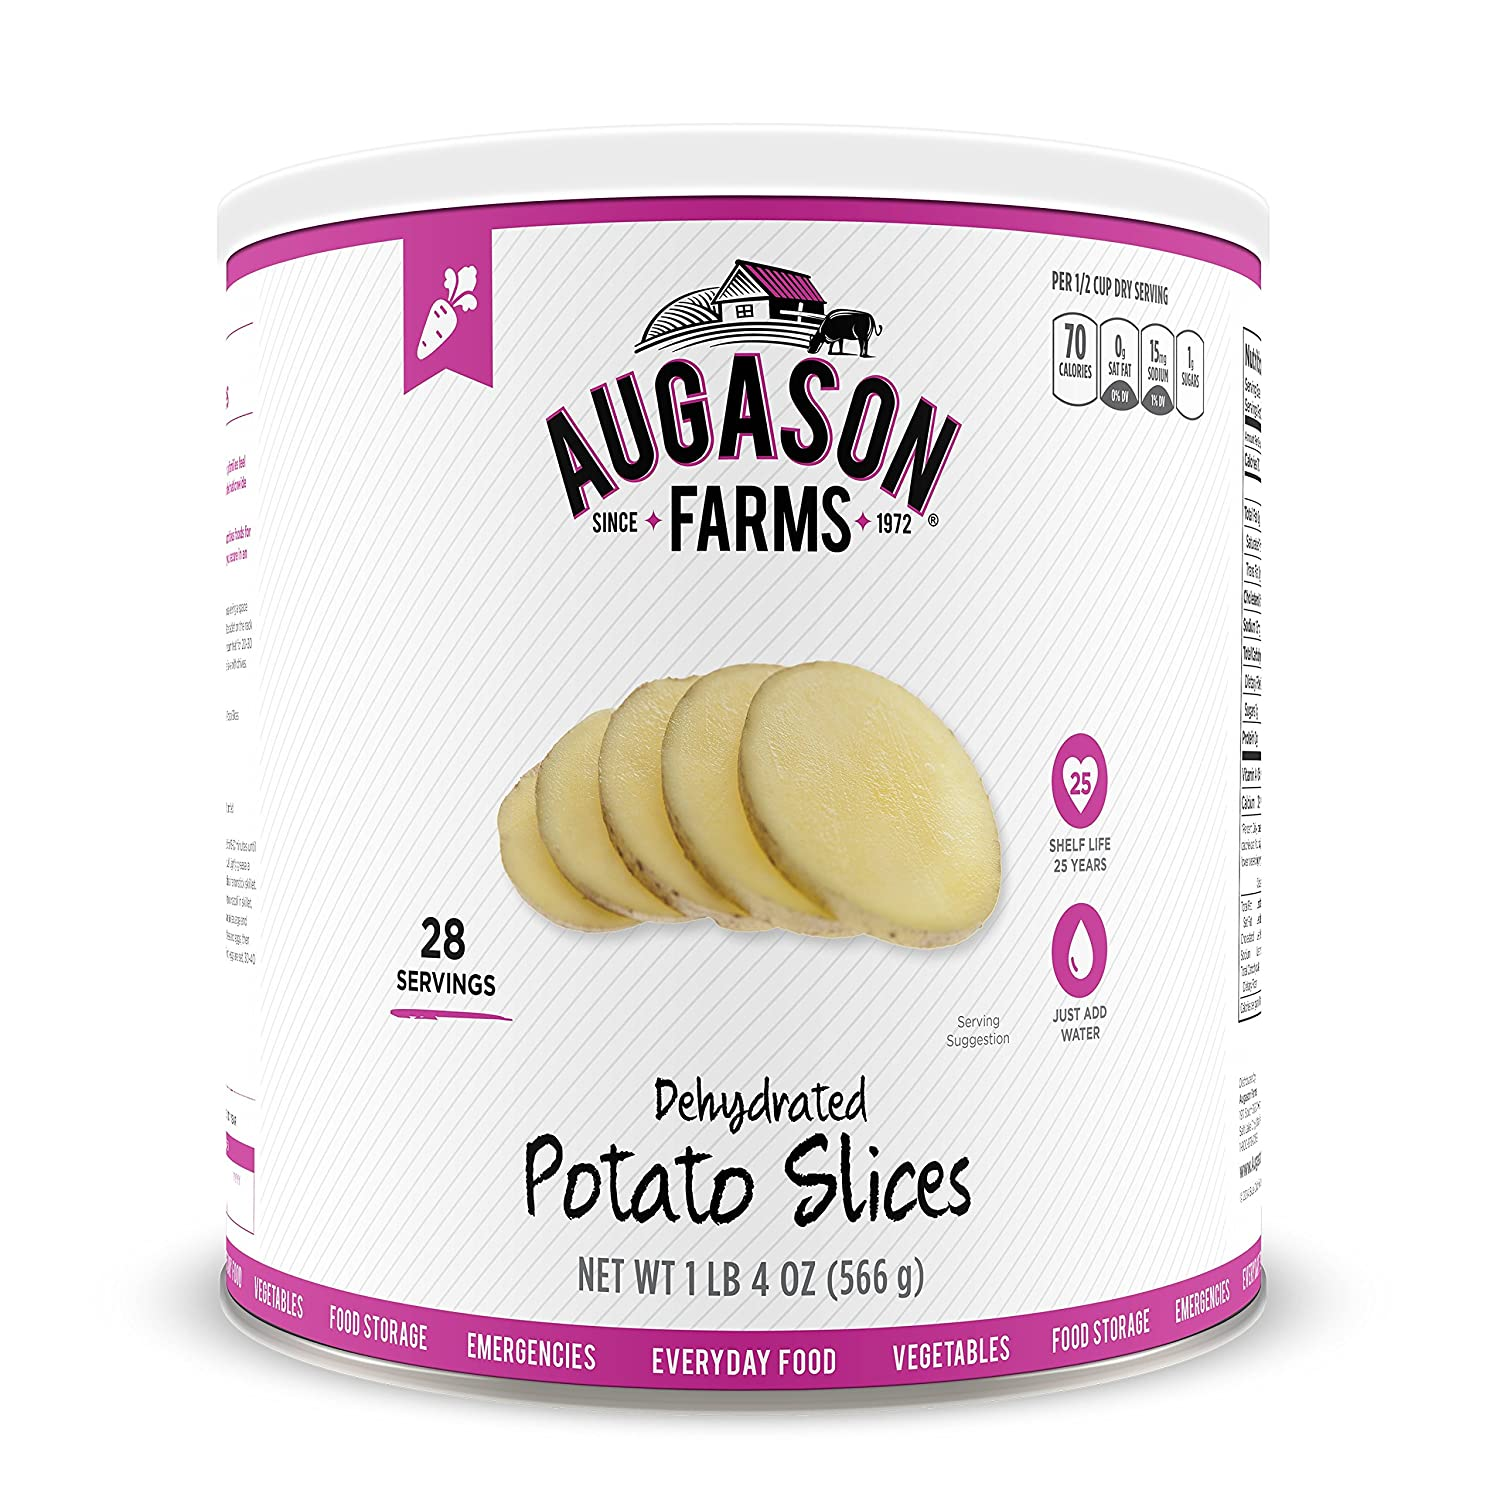 Augason Farms Dehydrated Potato Slices 1 lb 4 oz No. 10 Can Pink 3-pack (no. 10 can) Blue Chip Group